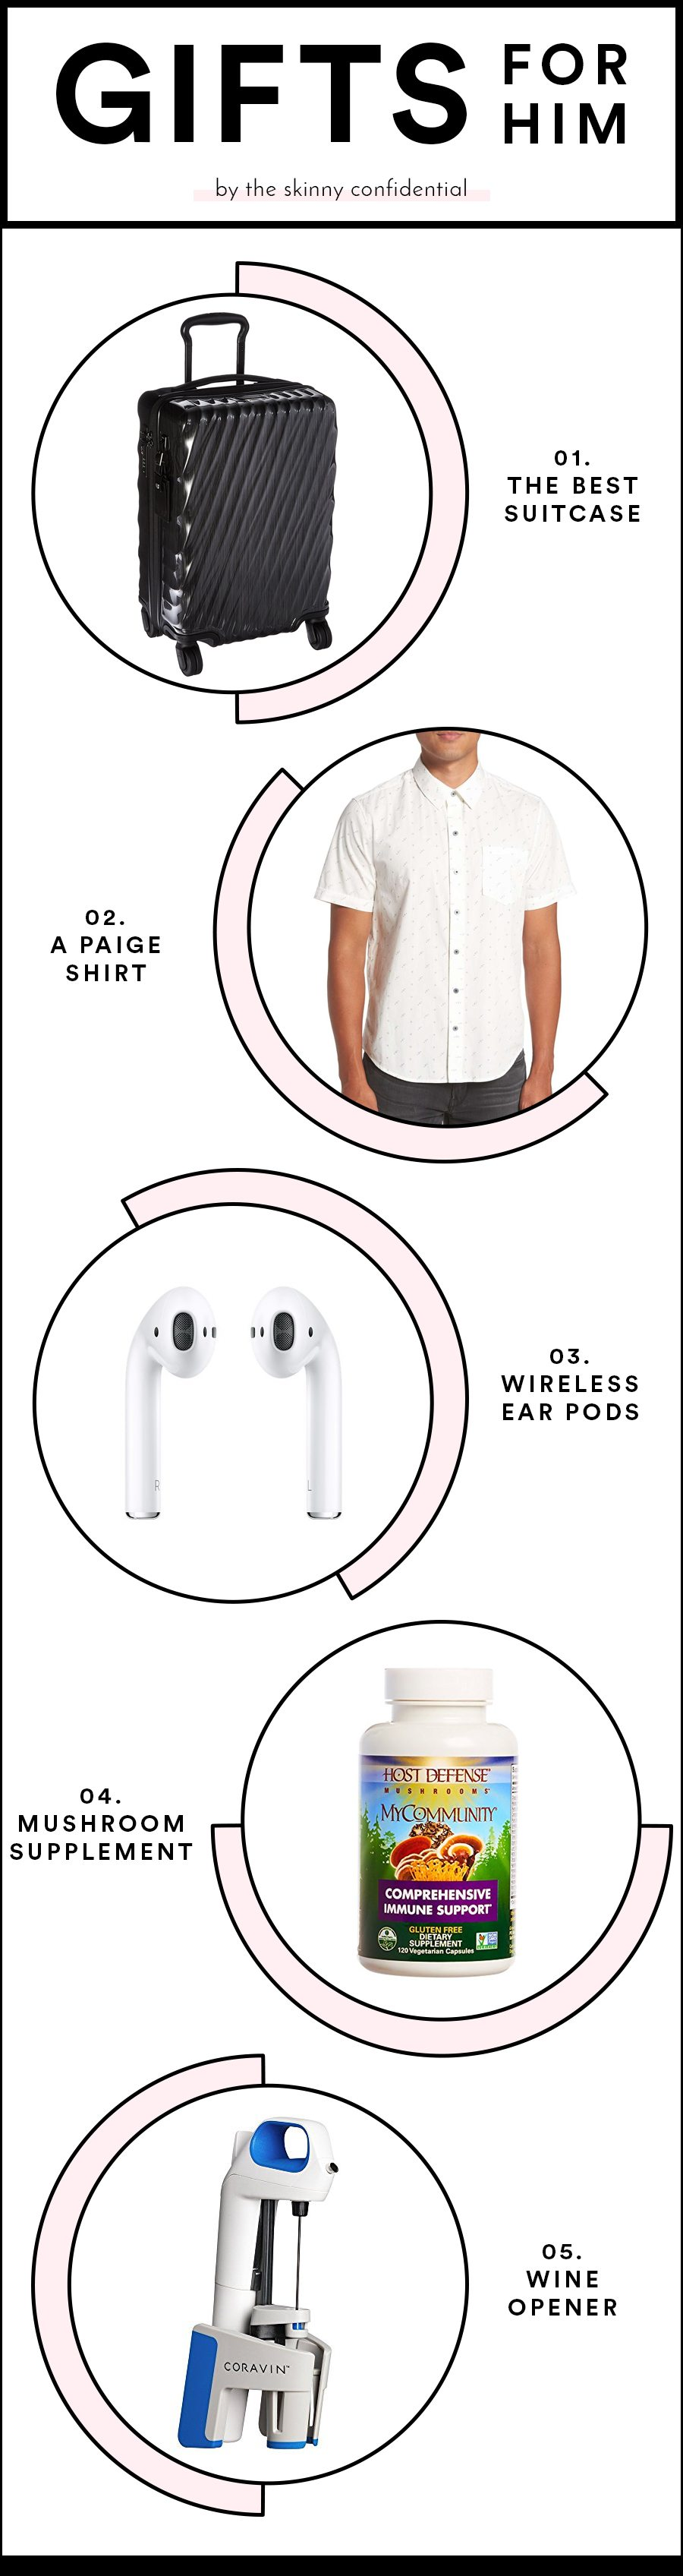 headphones luggage clothing christmas gift ideas by the skinny confidential